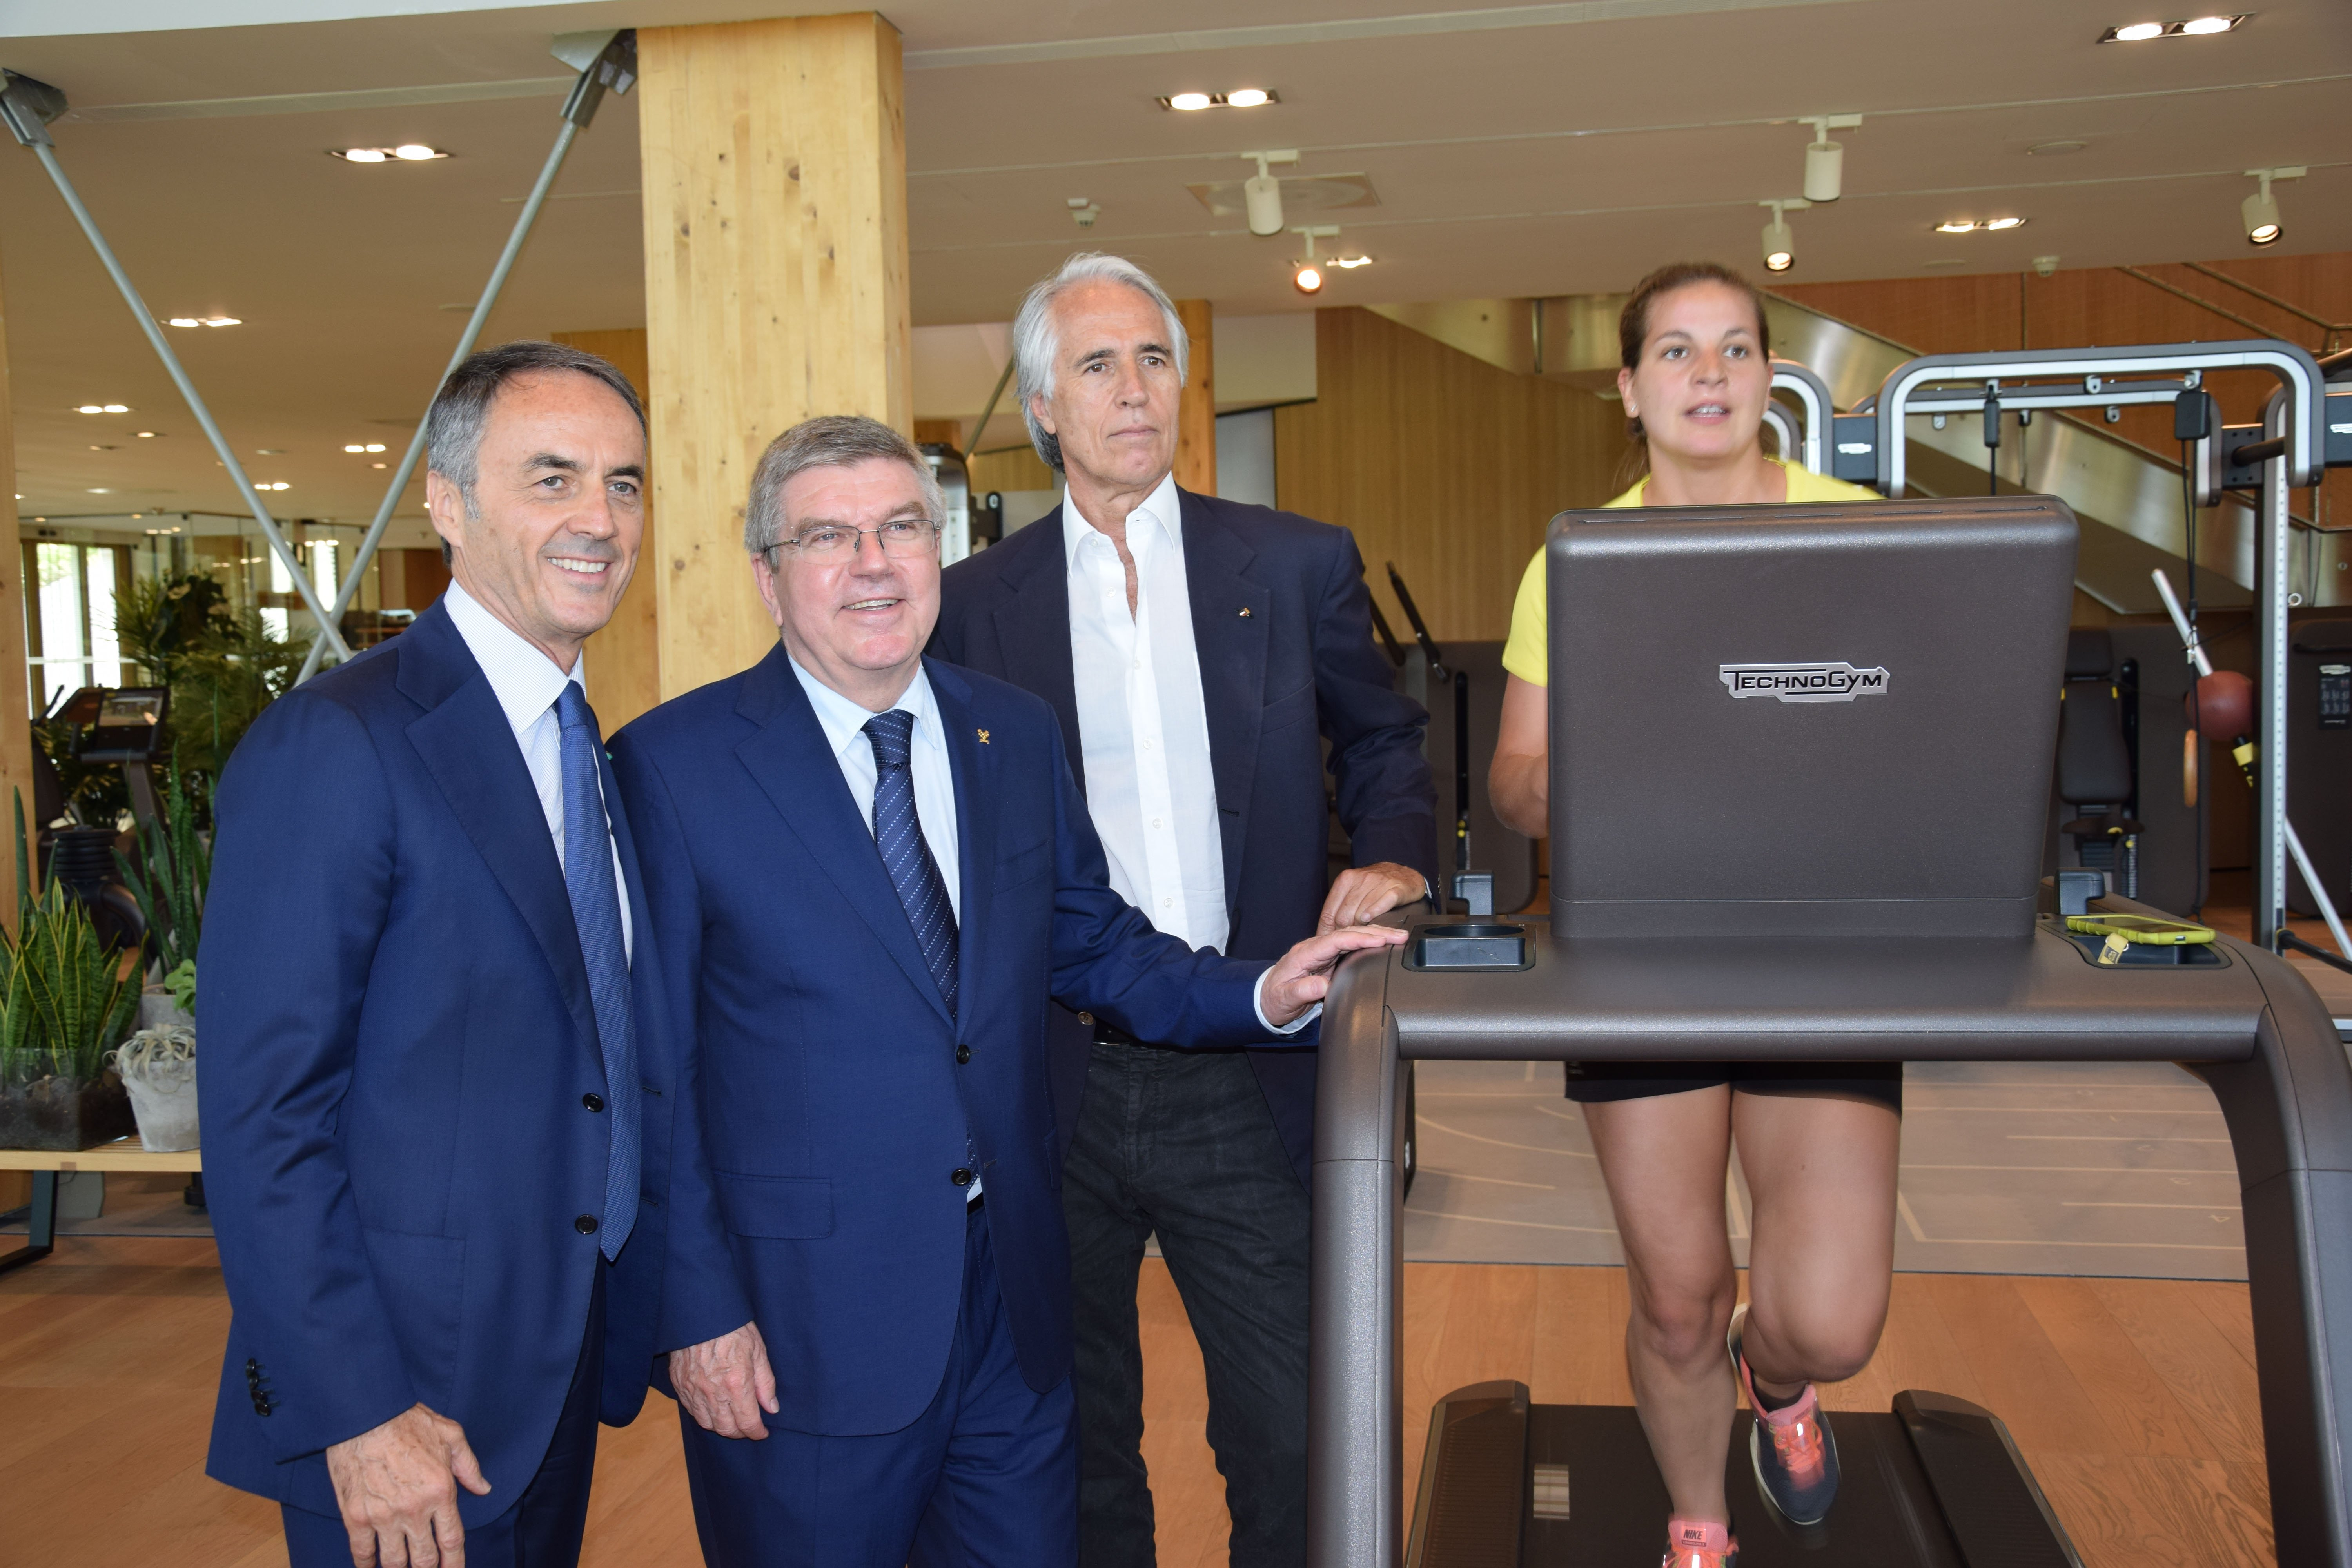 Thomas Bach, President of the International Olympic Committee, visits Technogym